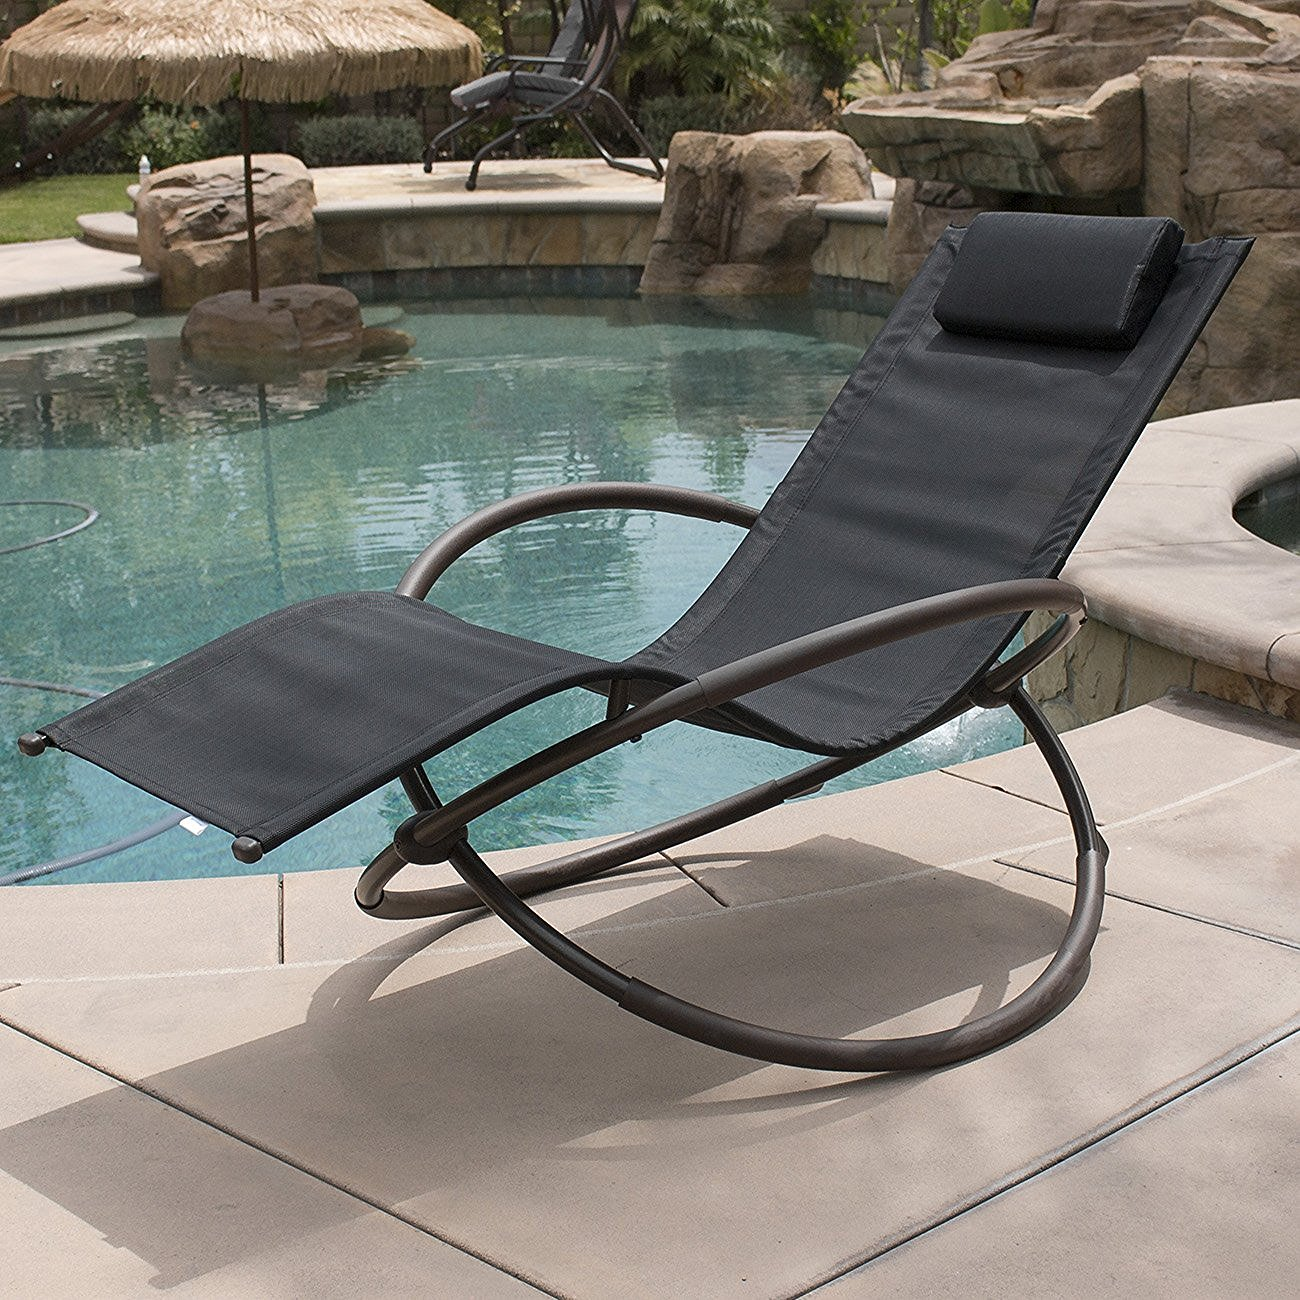 belleze-zero-gravity-orbital-lounger-rocking-chair-outdoor- & Our Review of the 10 Best Outdoor Zero Gravity Recliners